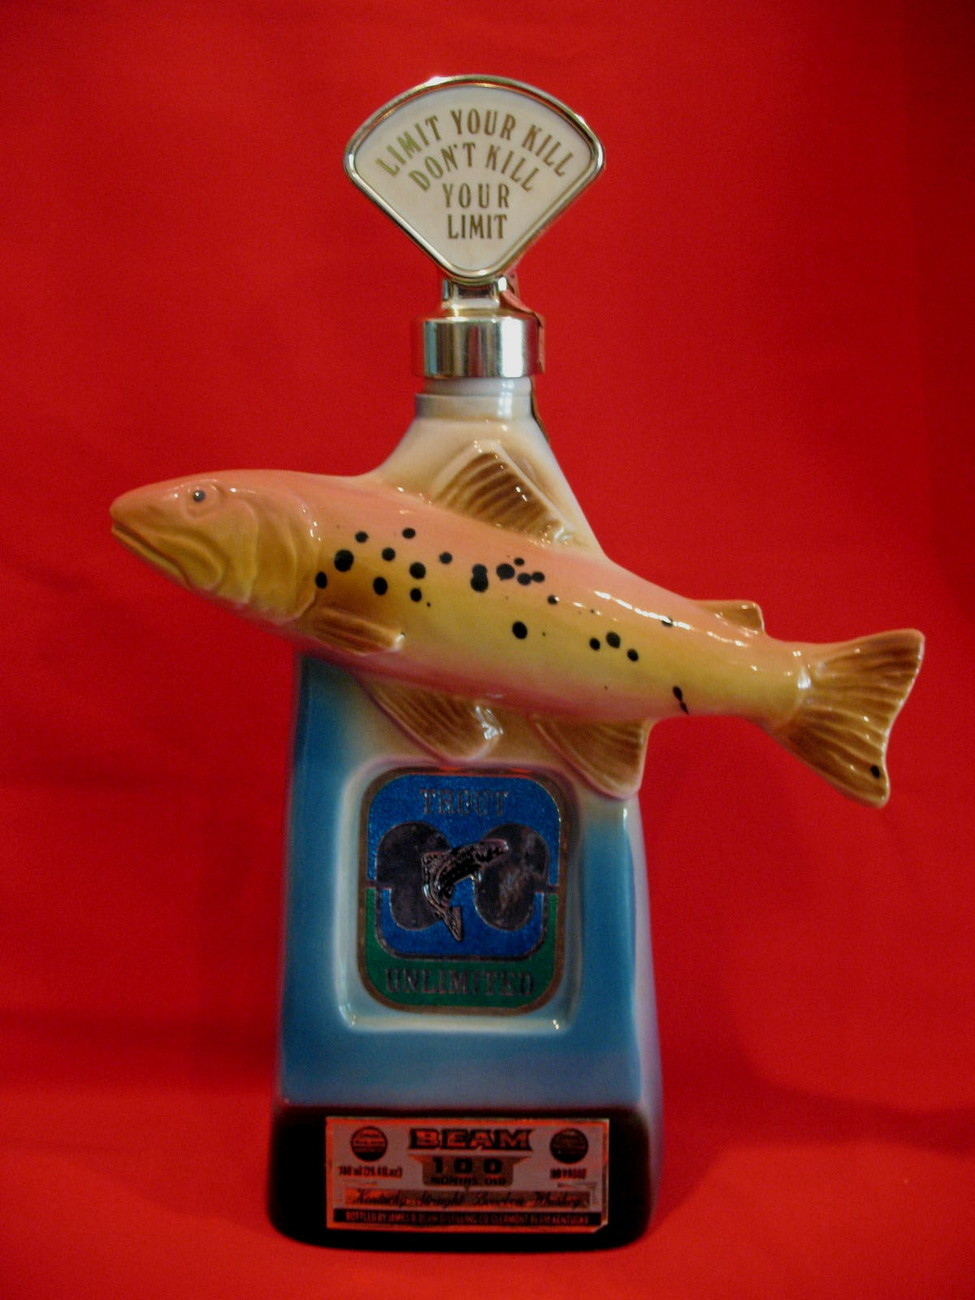 Primary image for Vintage Jim Beam Bourbon Whiskey Decanter Trout Fish Fisherman Fishing Souvenir